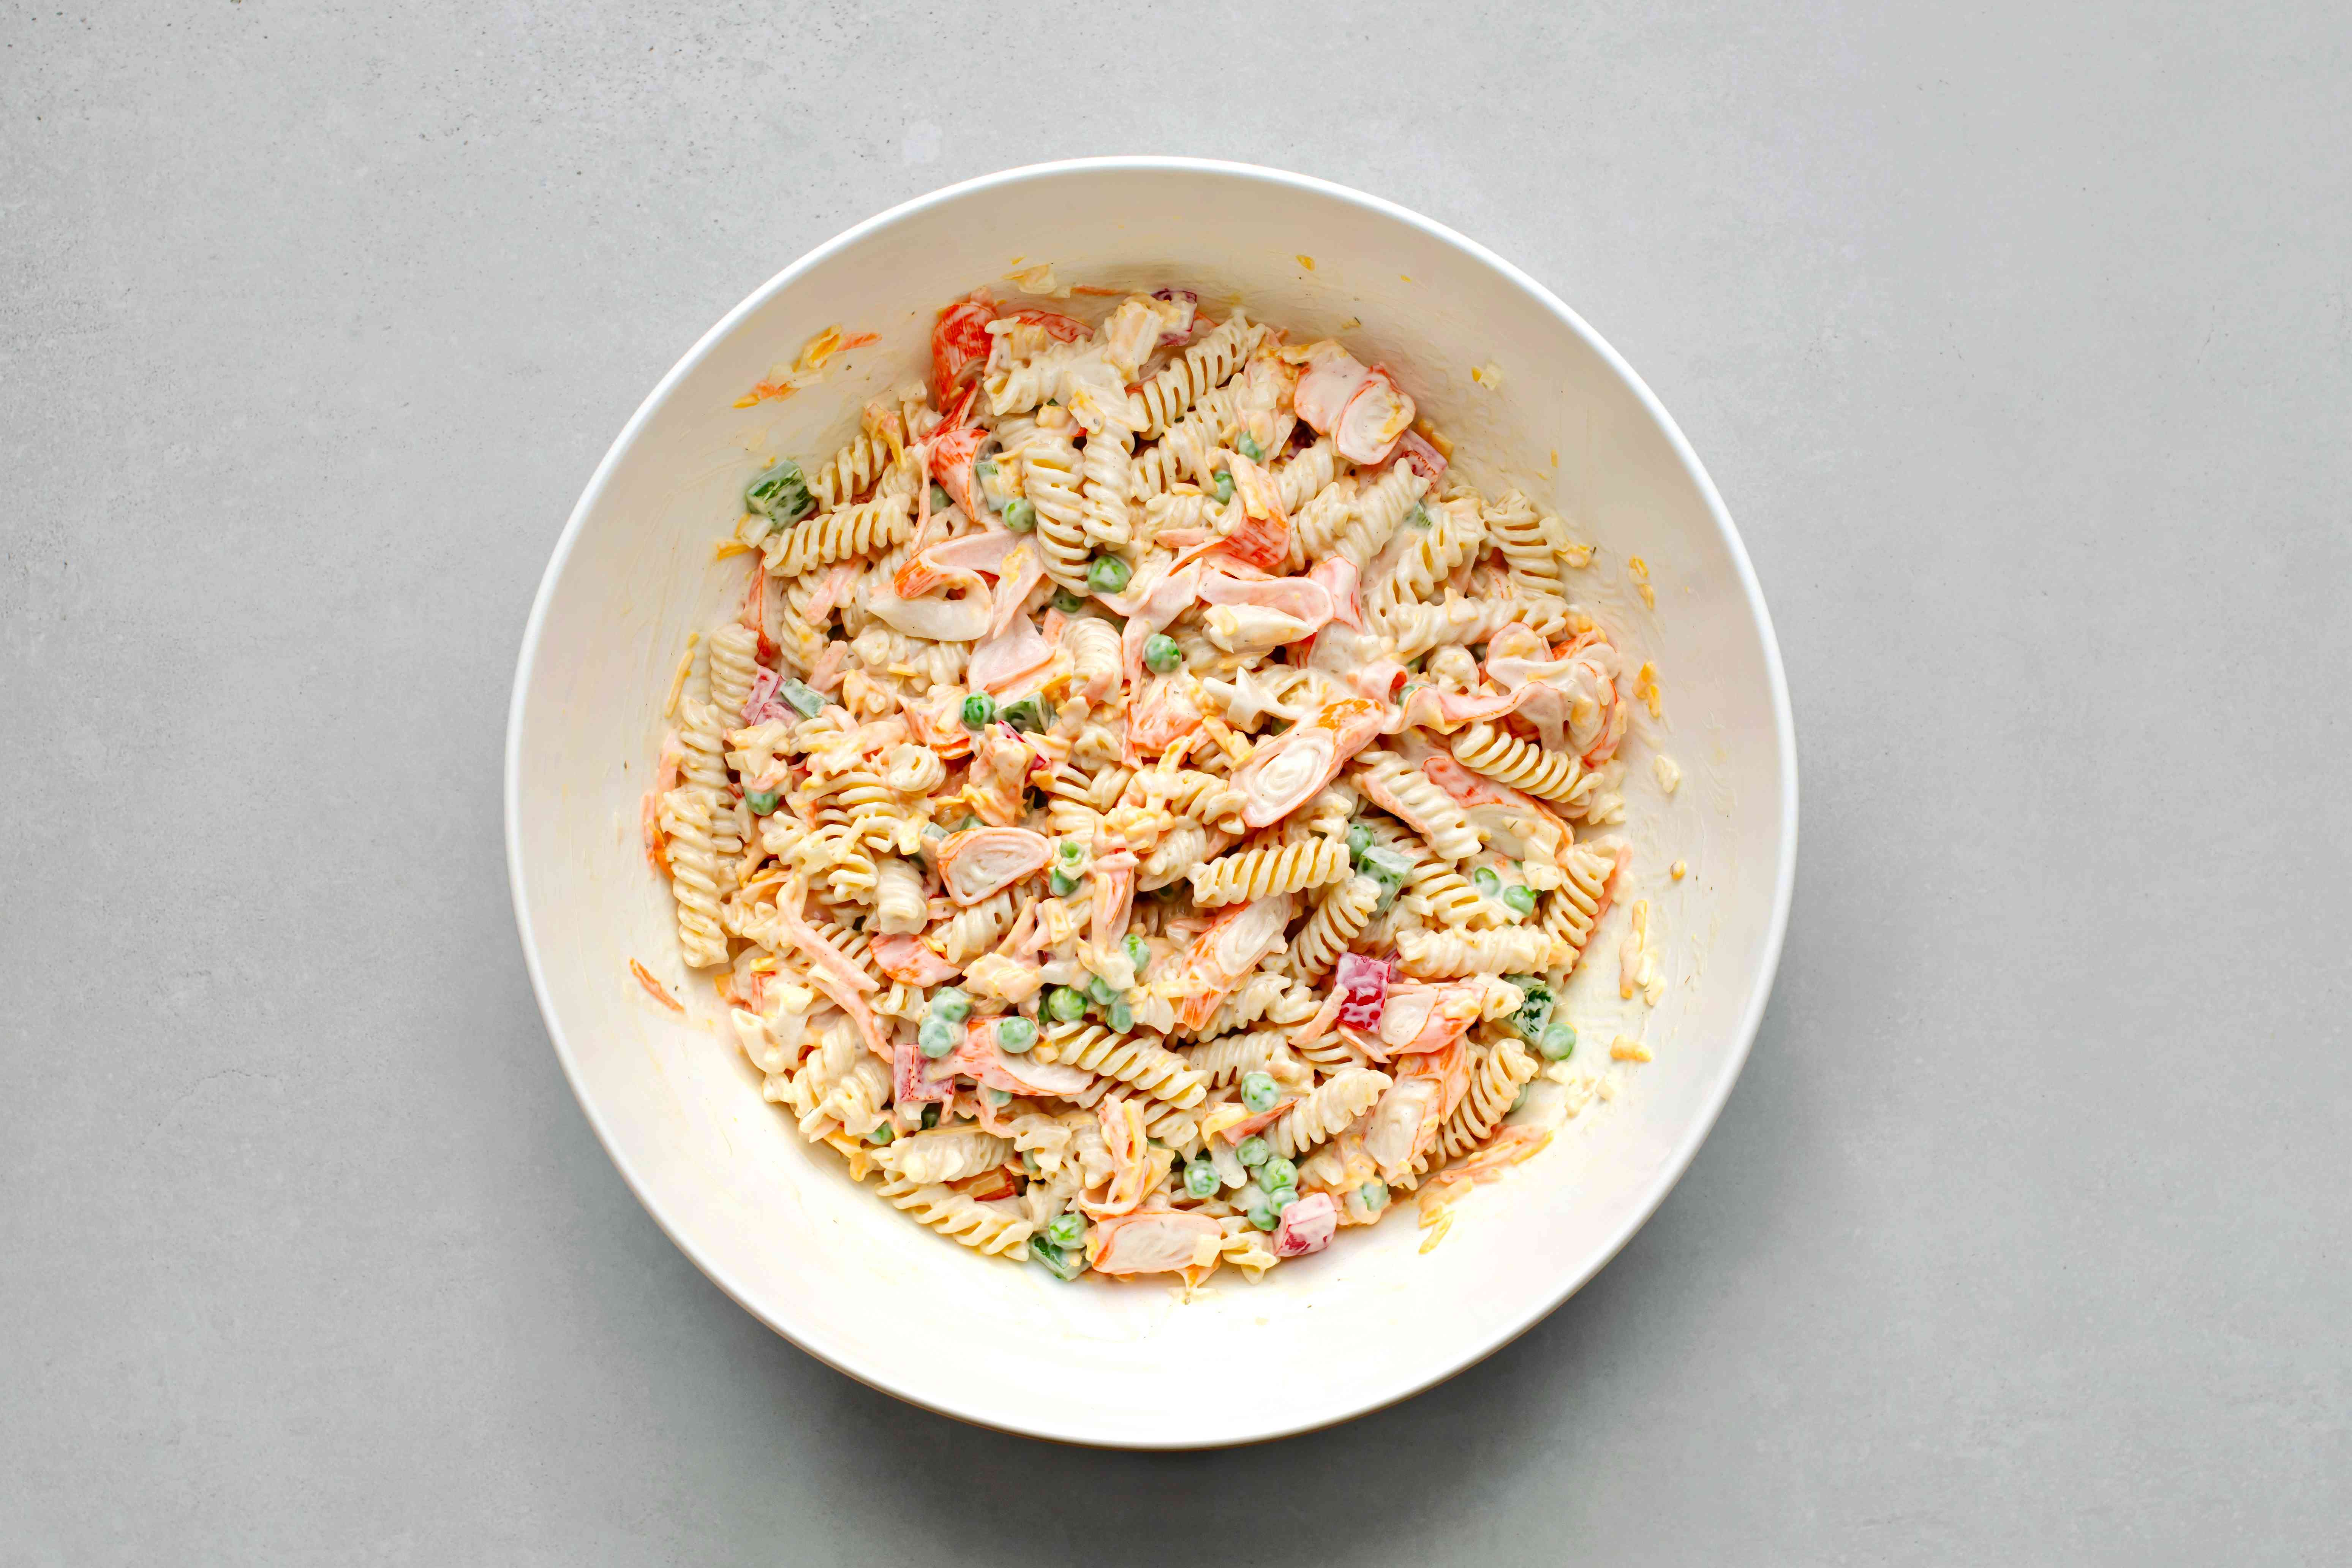 pasta along with seafood, shredded cheese, ranch dressing, peas, green and red bell pepper, onion, and carrot in a bowl